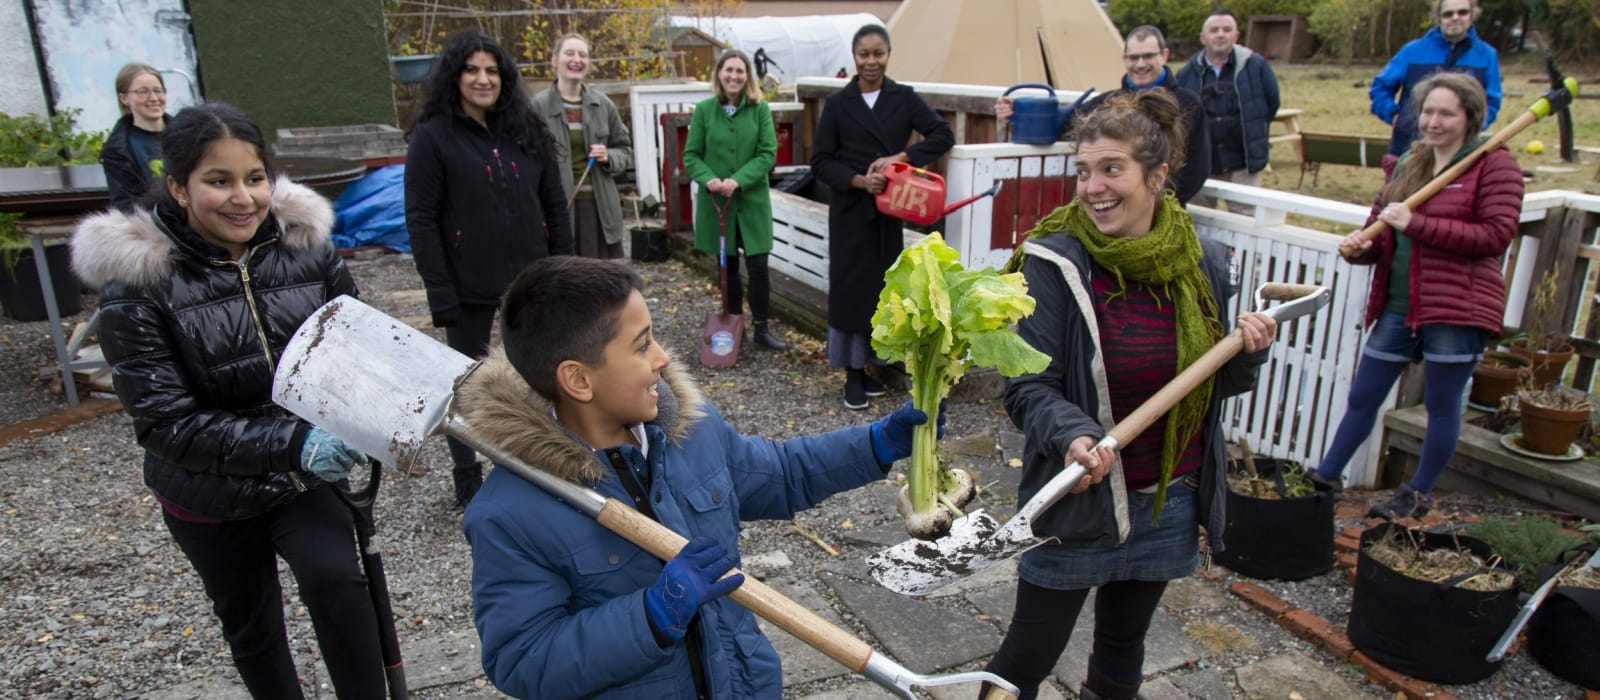 National Lottery £600K brings Glasgow community food partners together to act on climate change